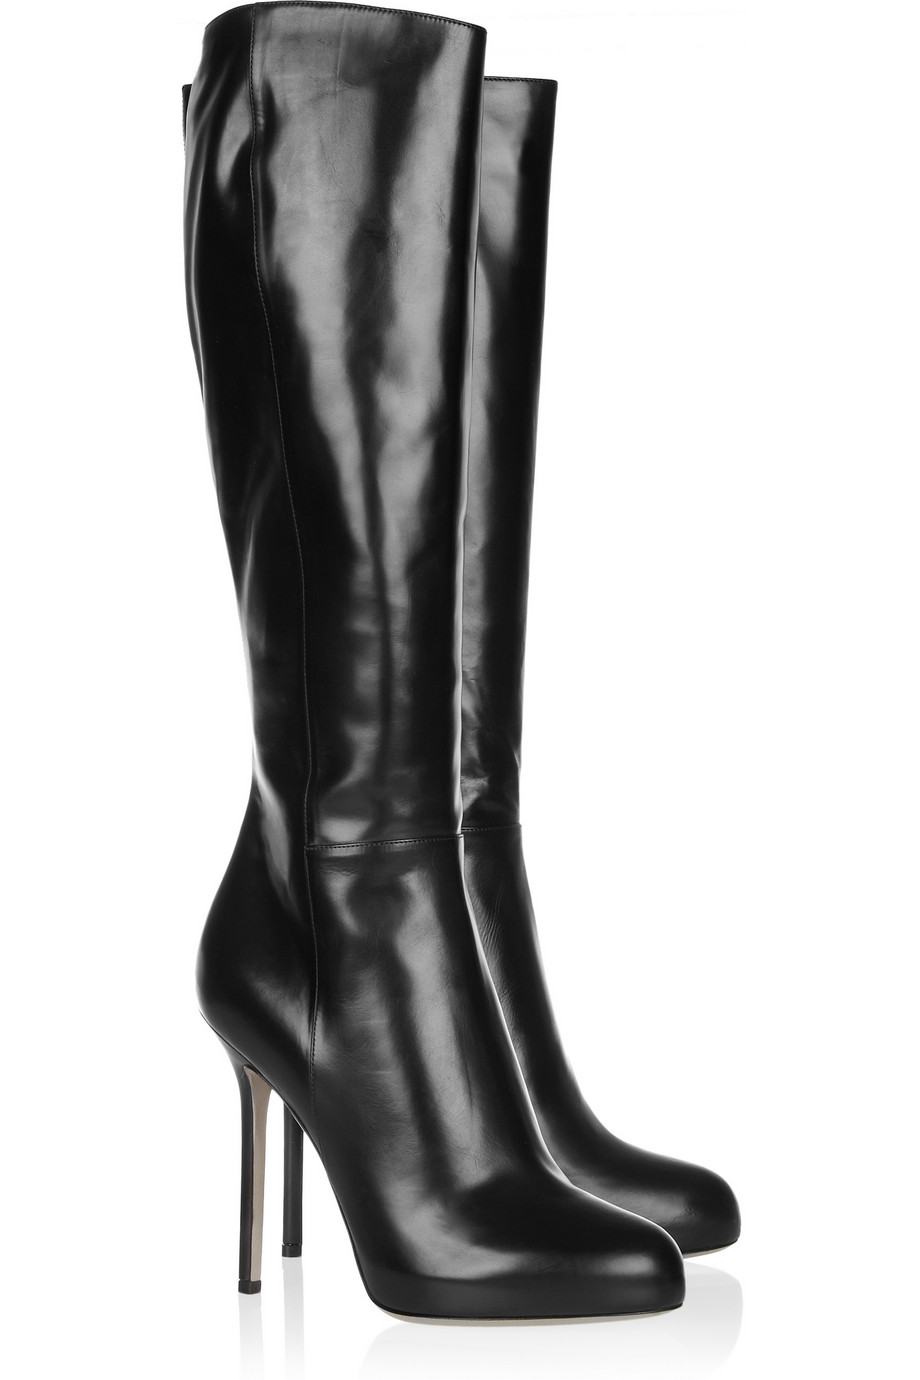 Black Leather Boots Womens oQNY7XZz